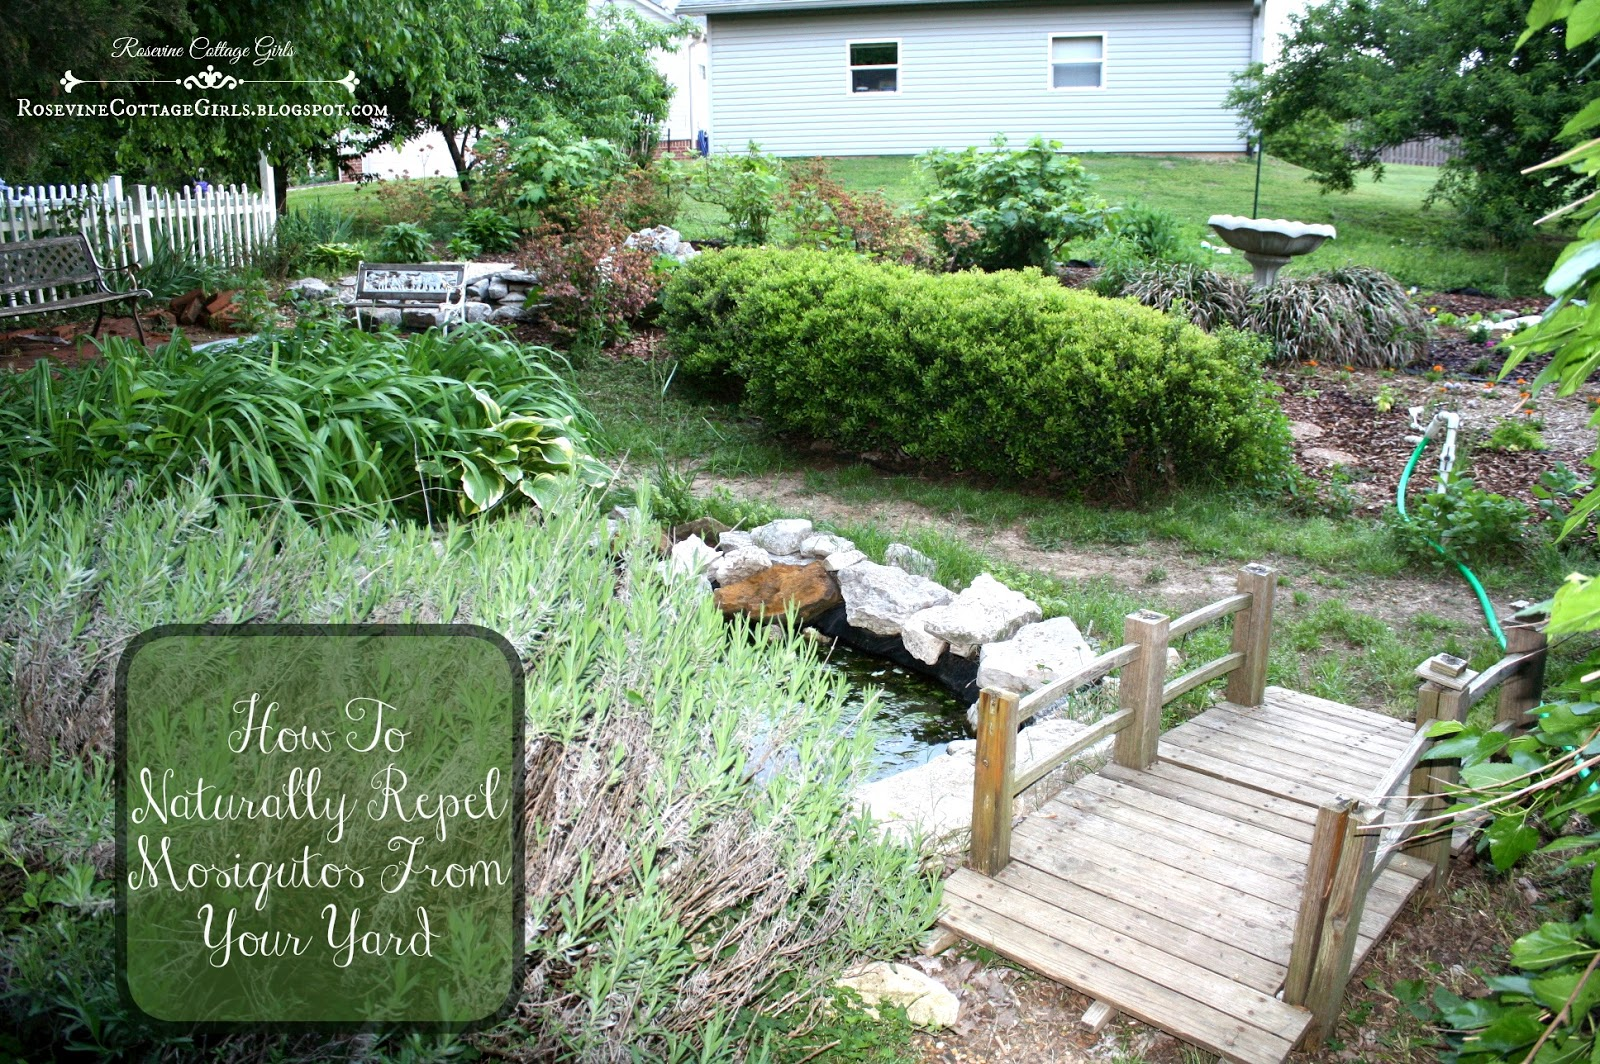 Rosevine Cottage Girls How To Naturally Repel Mosquitos